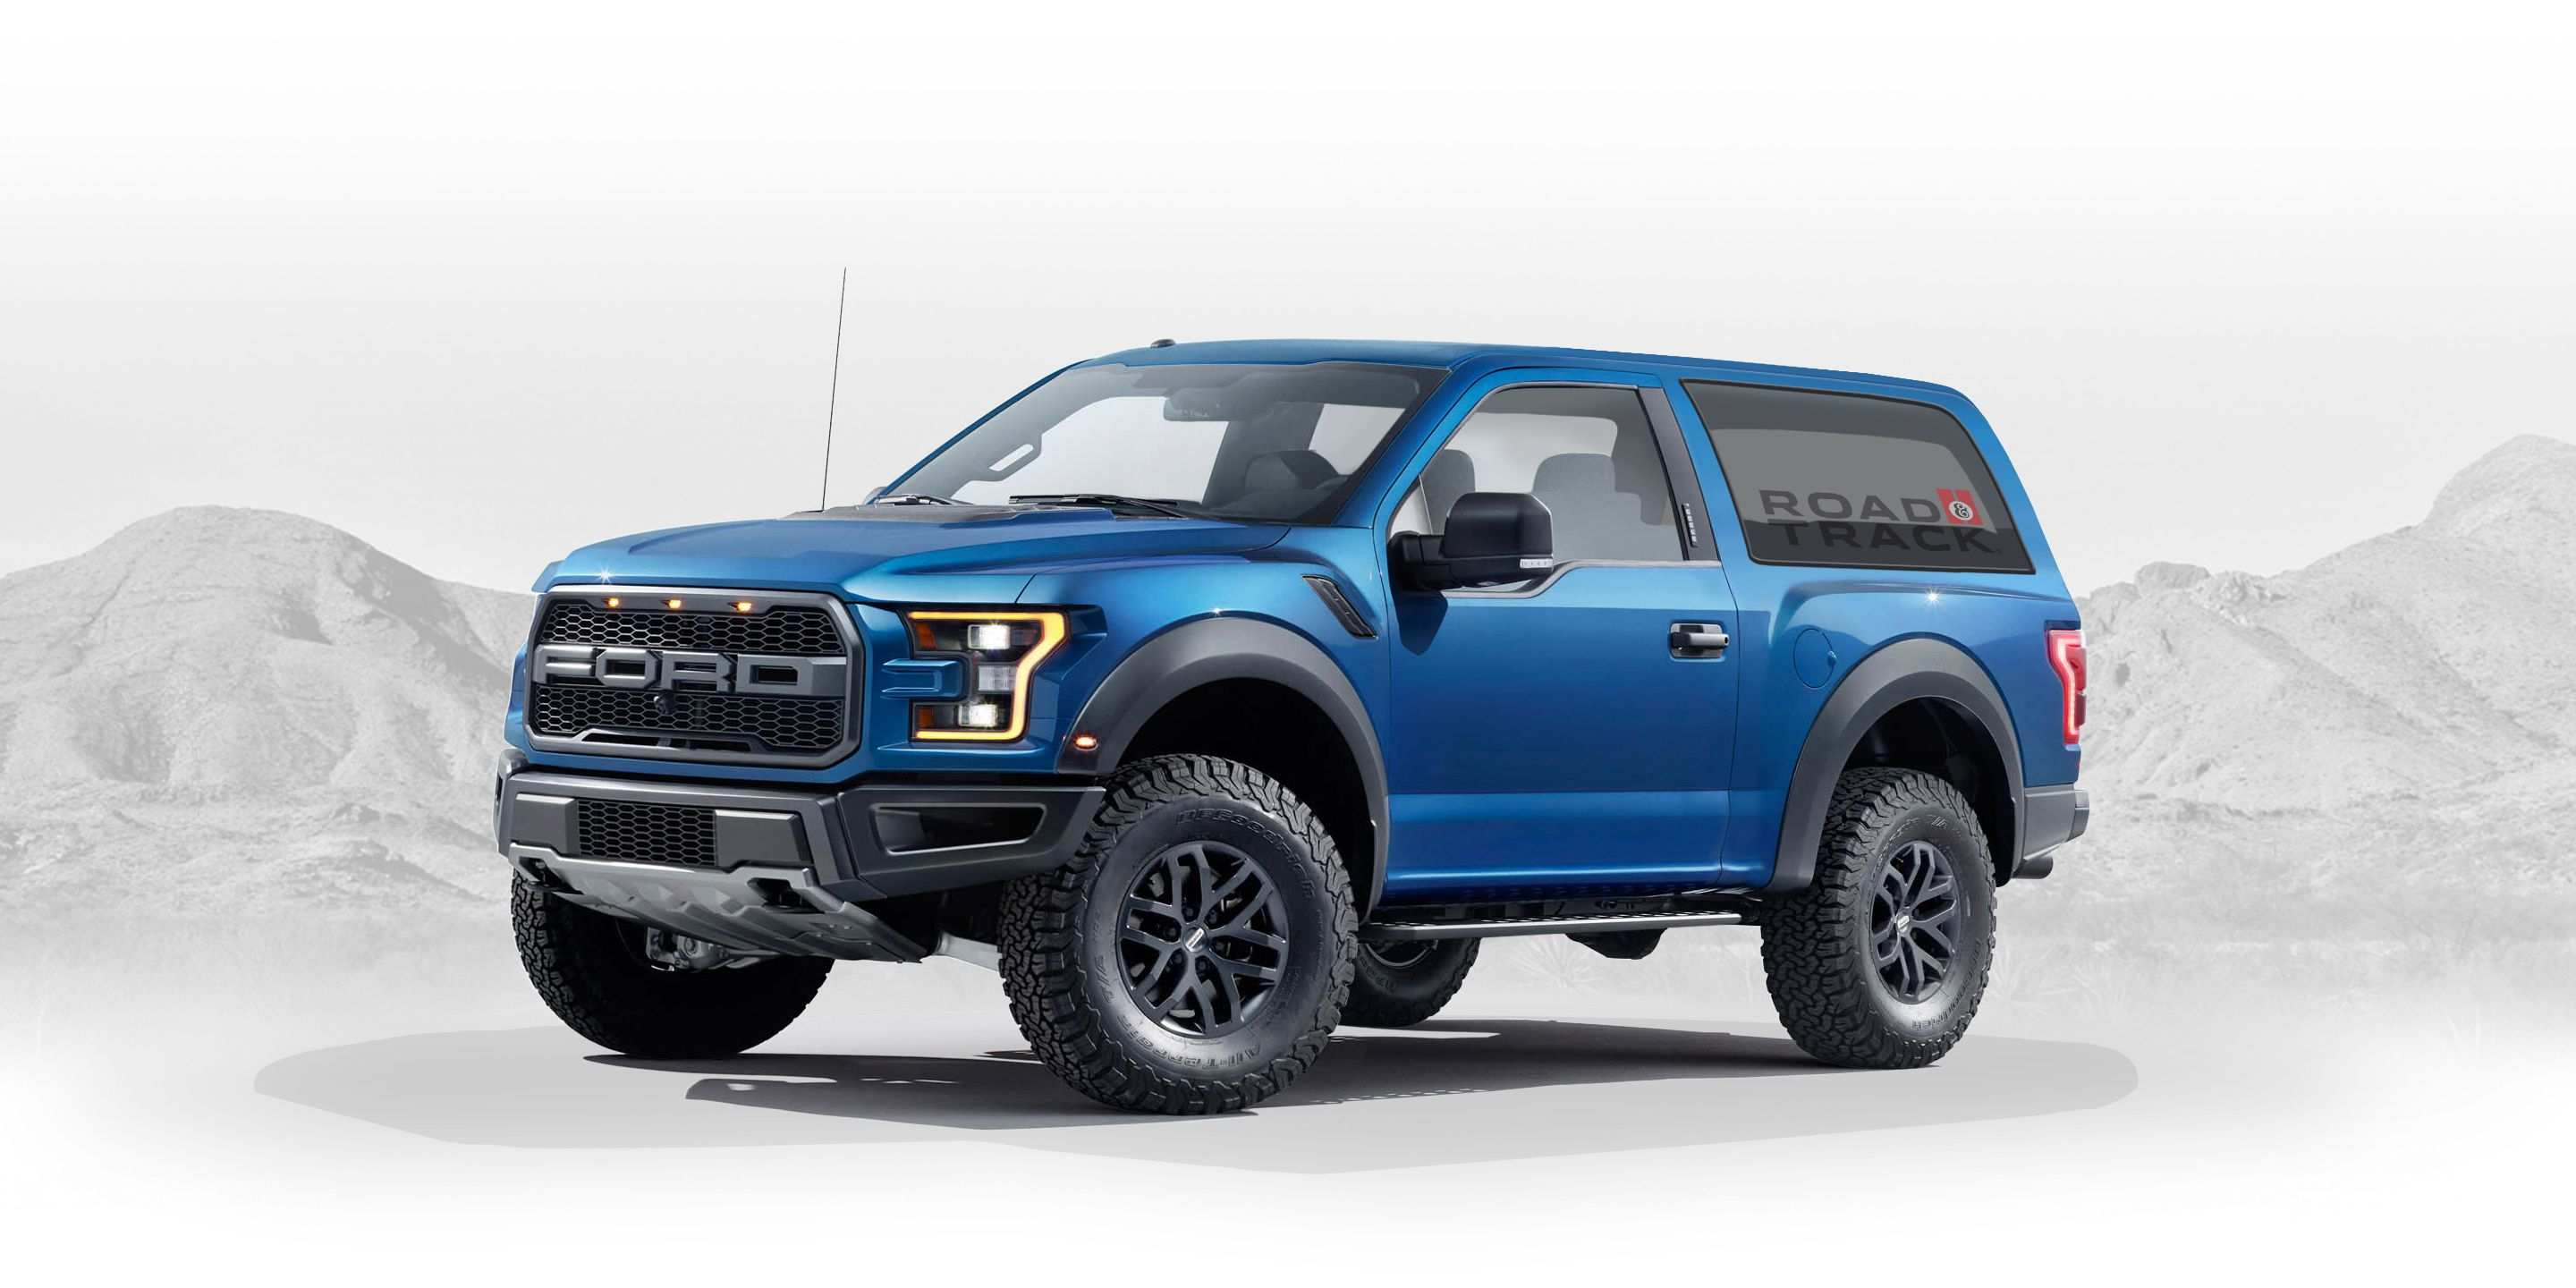 23 Gallery of 2020 Ford Bronco Auto Show Configurations with 2020 Ford Bronco Auto Show